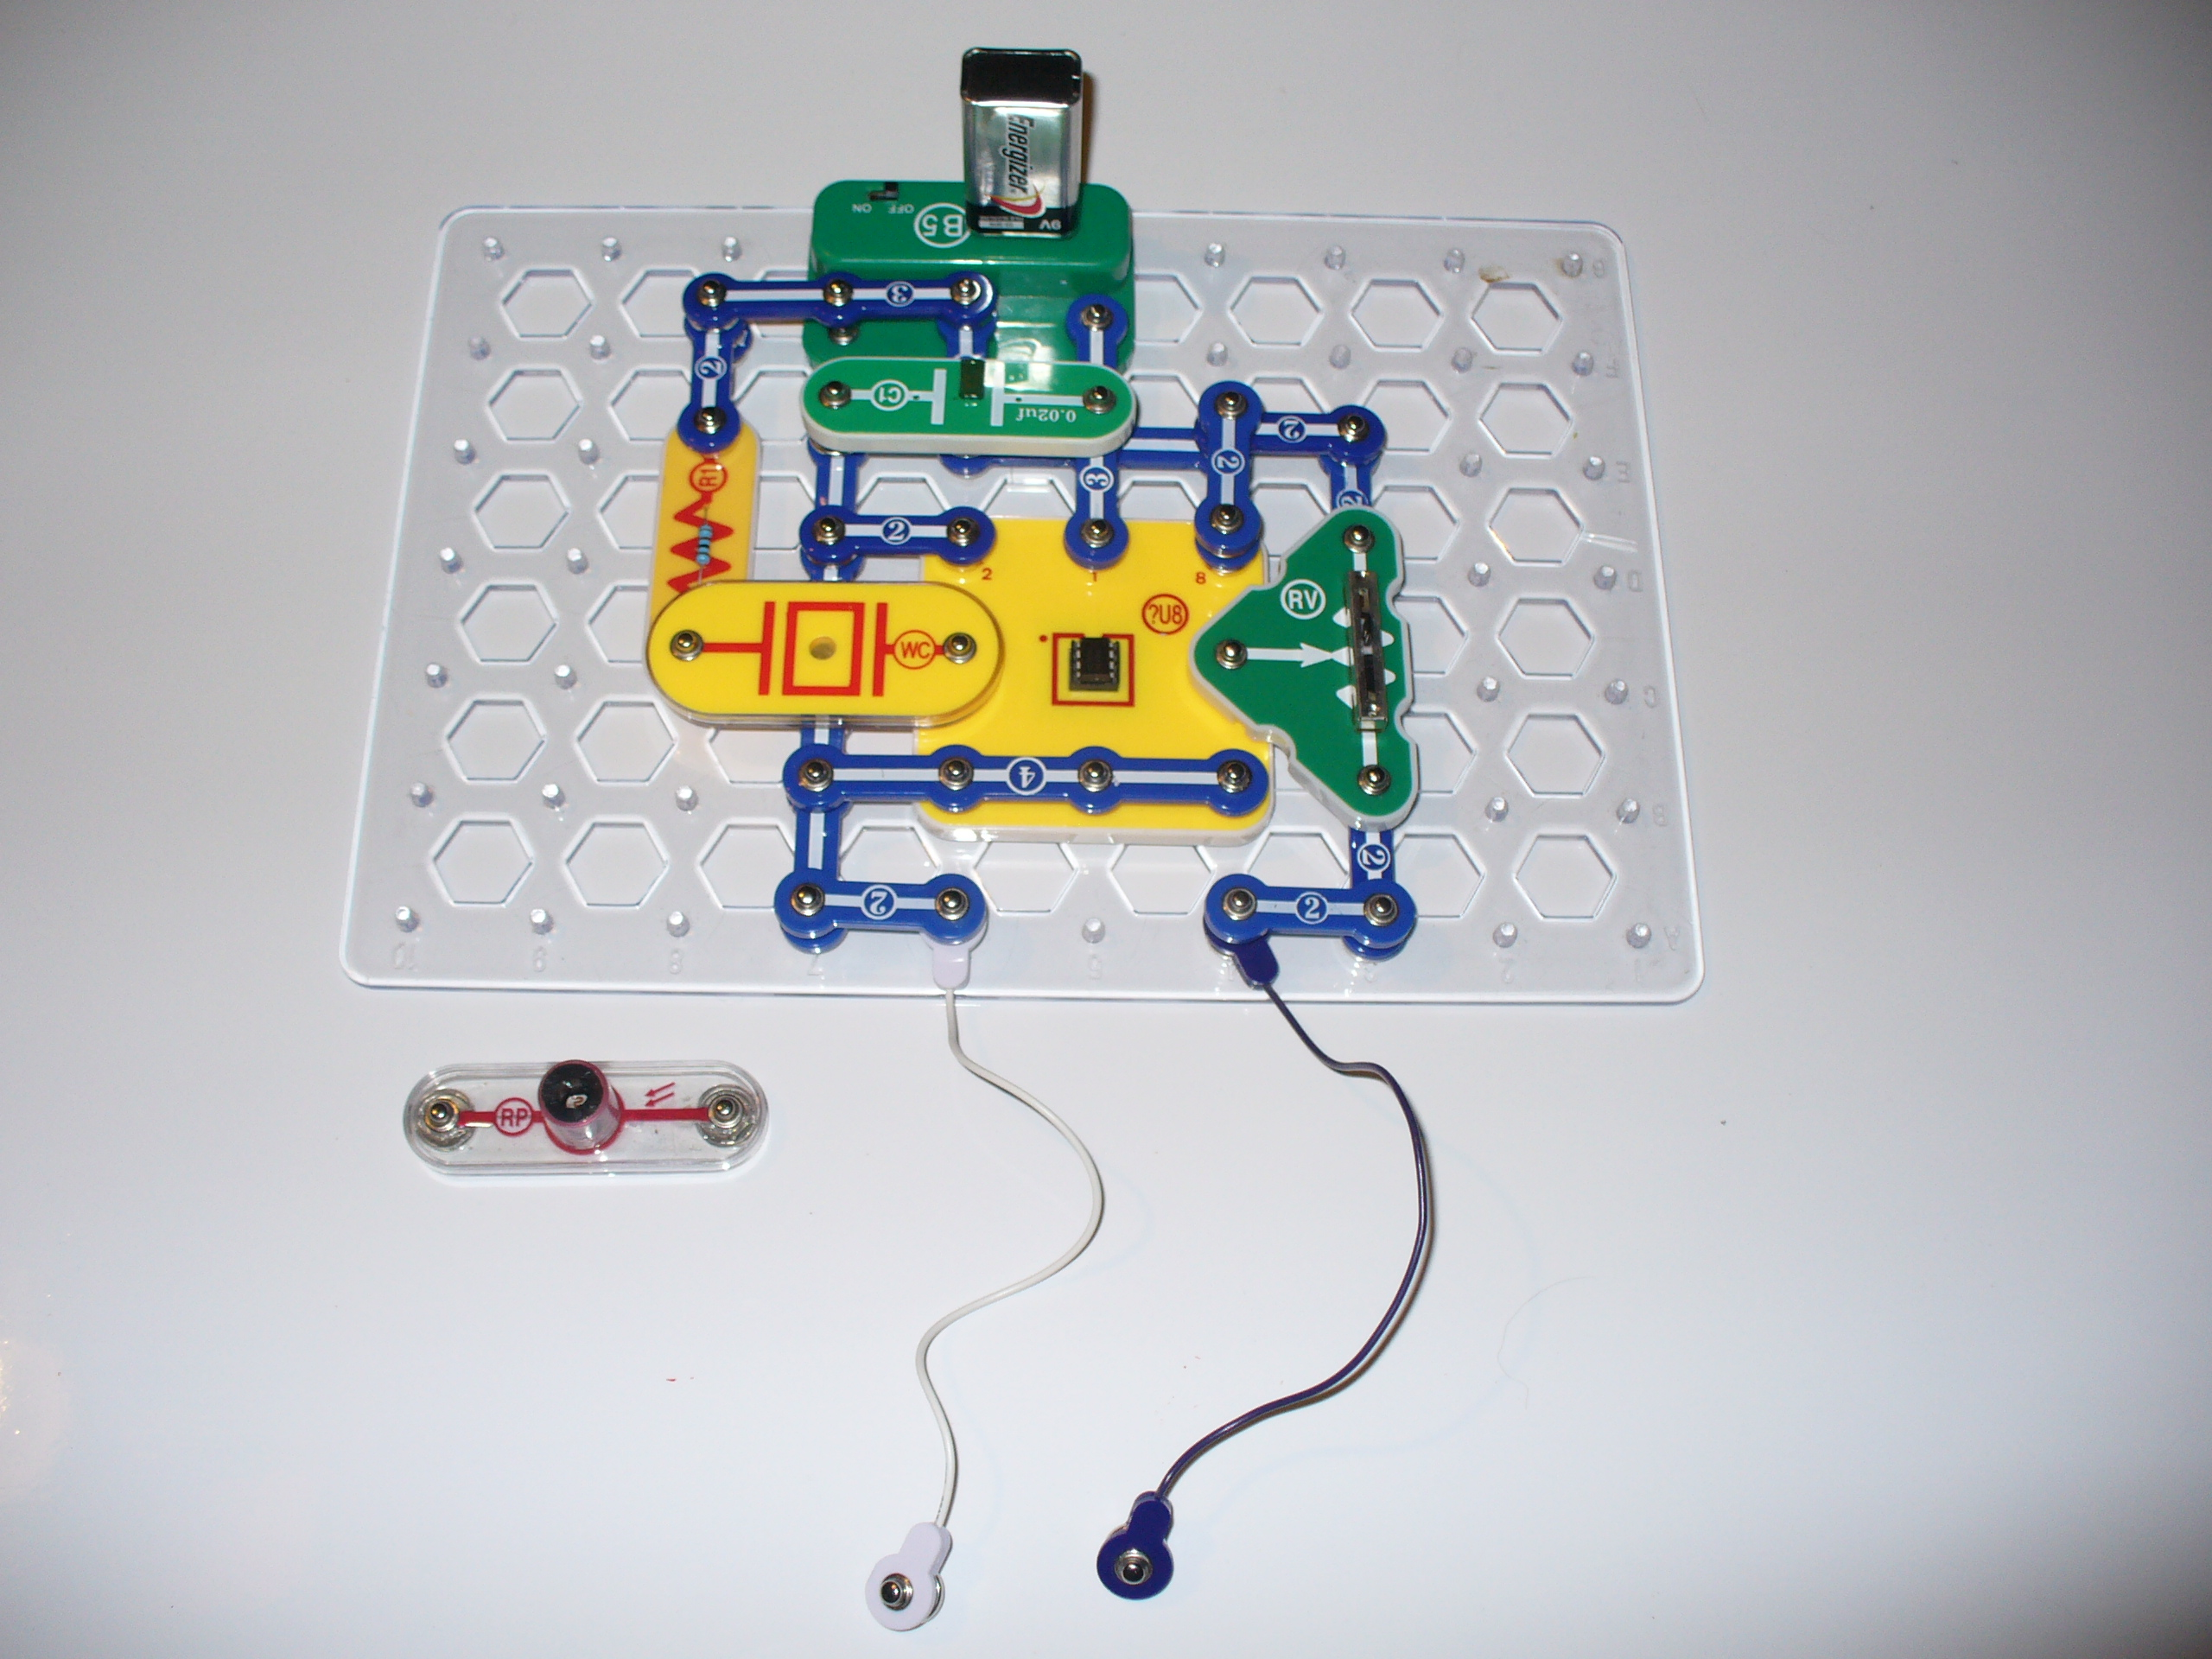 Picture of Let's Try Some Experiments With the 555 Timer Circuit